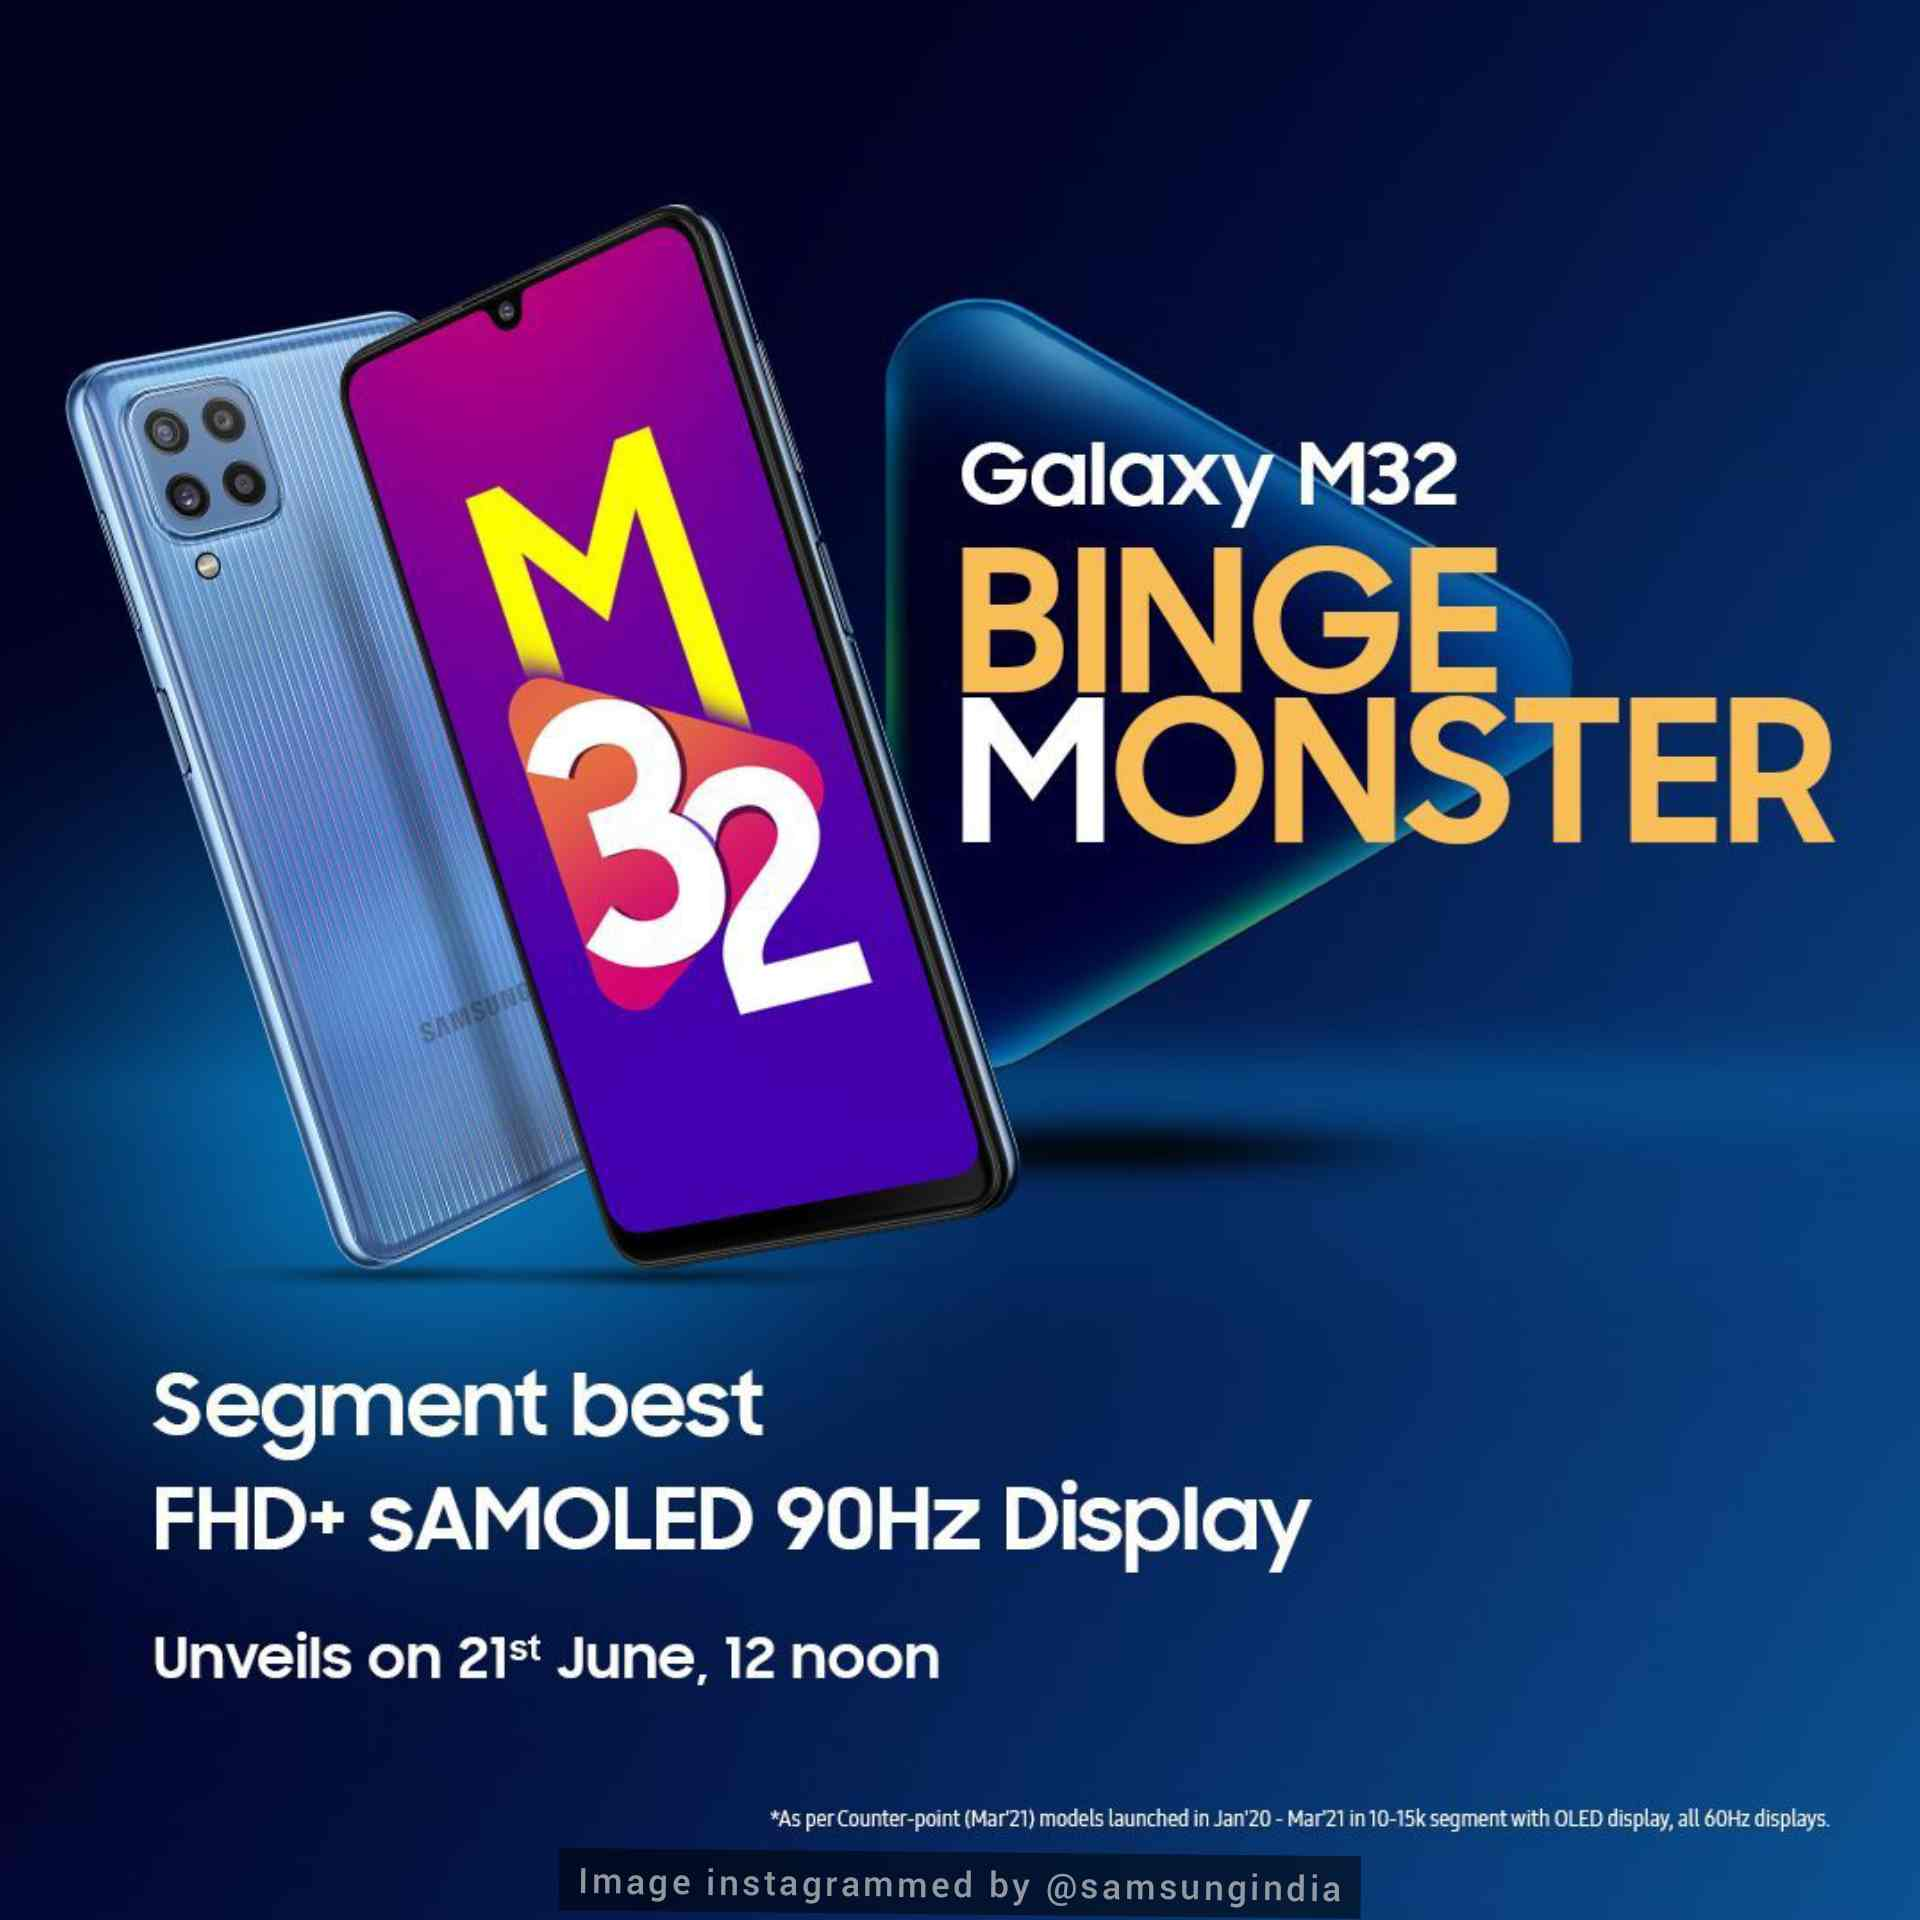 Samsung <a href='https://newsmaker.tribunnews.com/tag/galaxy-m32' title='Galaxy M32'>Galaxy M32</a> will be launched in India on June 21, specifications and  price revealed - choicethenoise